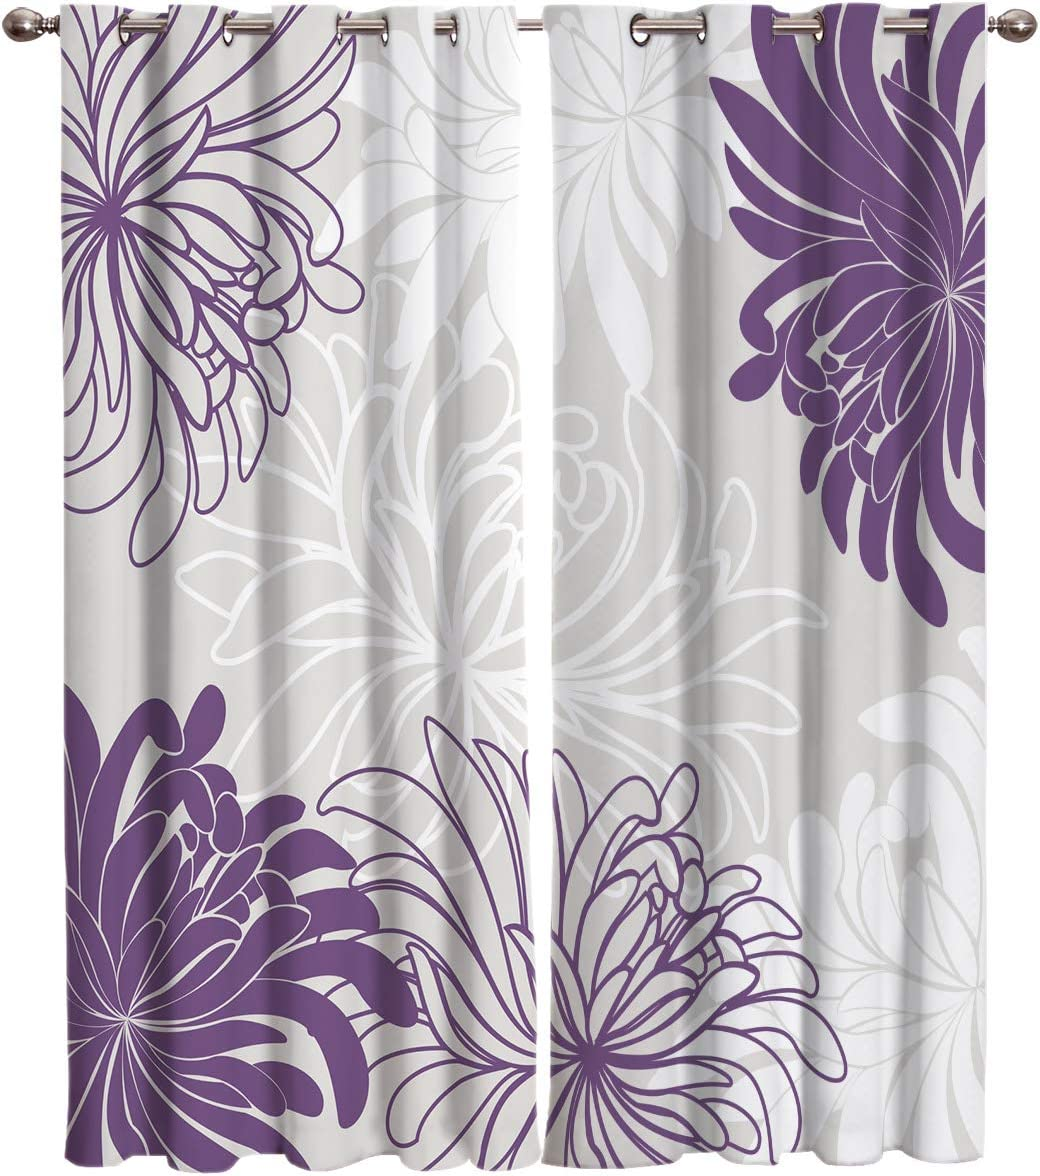 EZON-CH Blackout Curtains for Kitchen Bedroom Living Room Drapes,Colorful Floral Pattern White Purple Grey Thermal Insulated Curtains,Darkening Window Curtains 2 Panels,104 W by 96 L